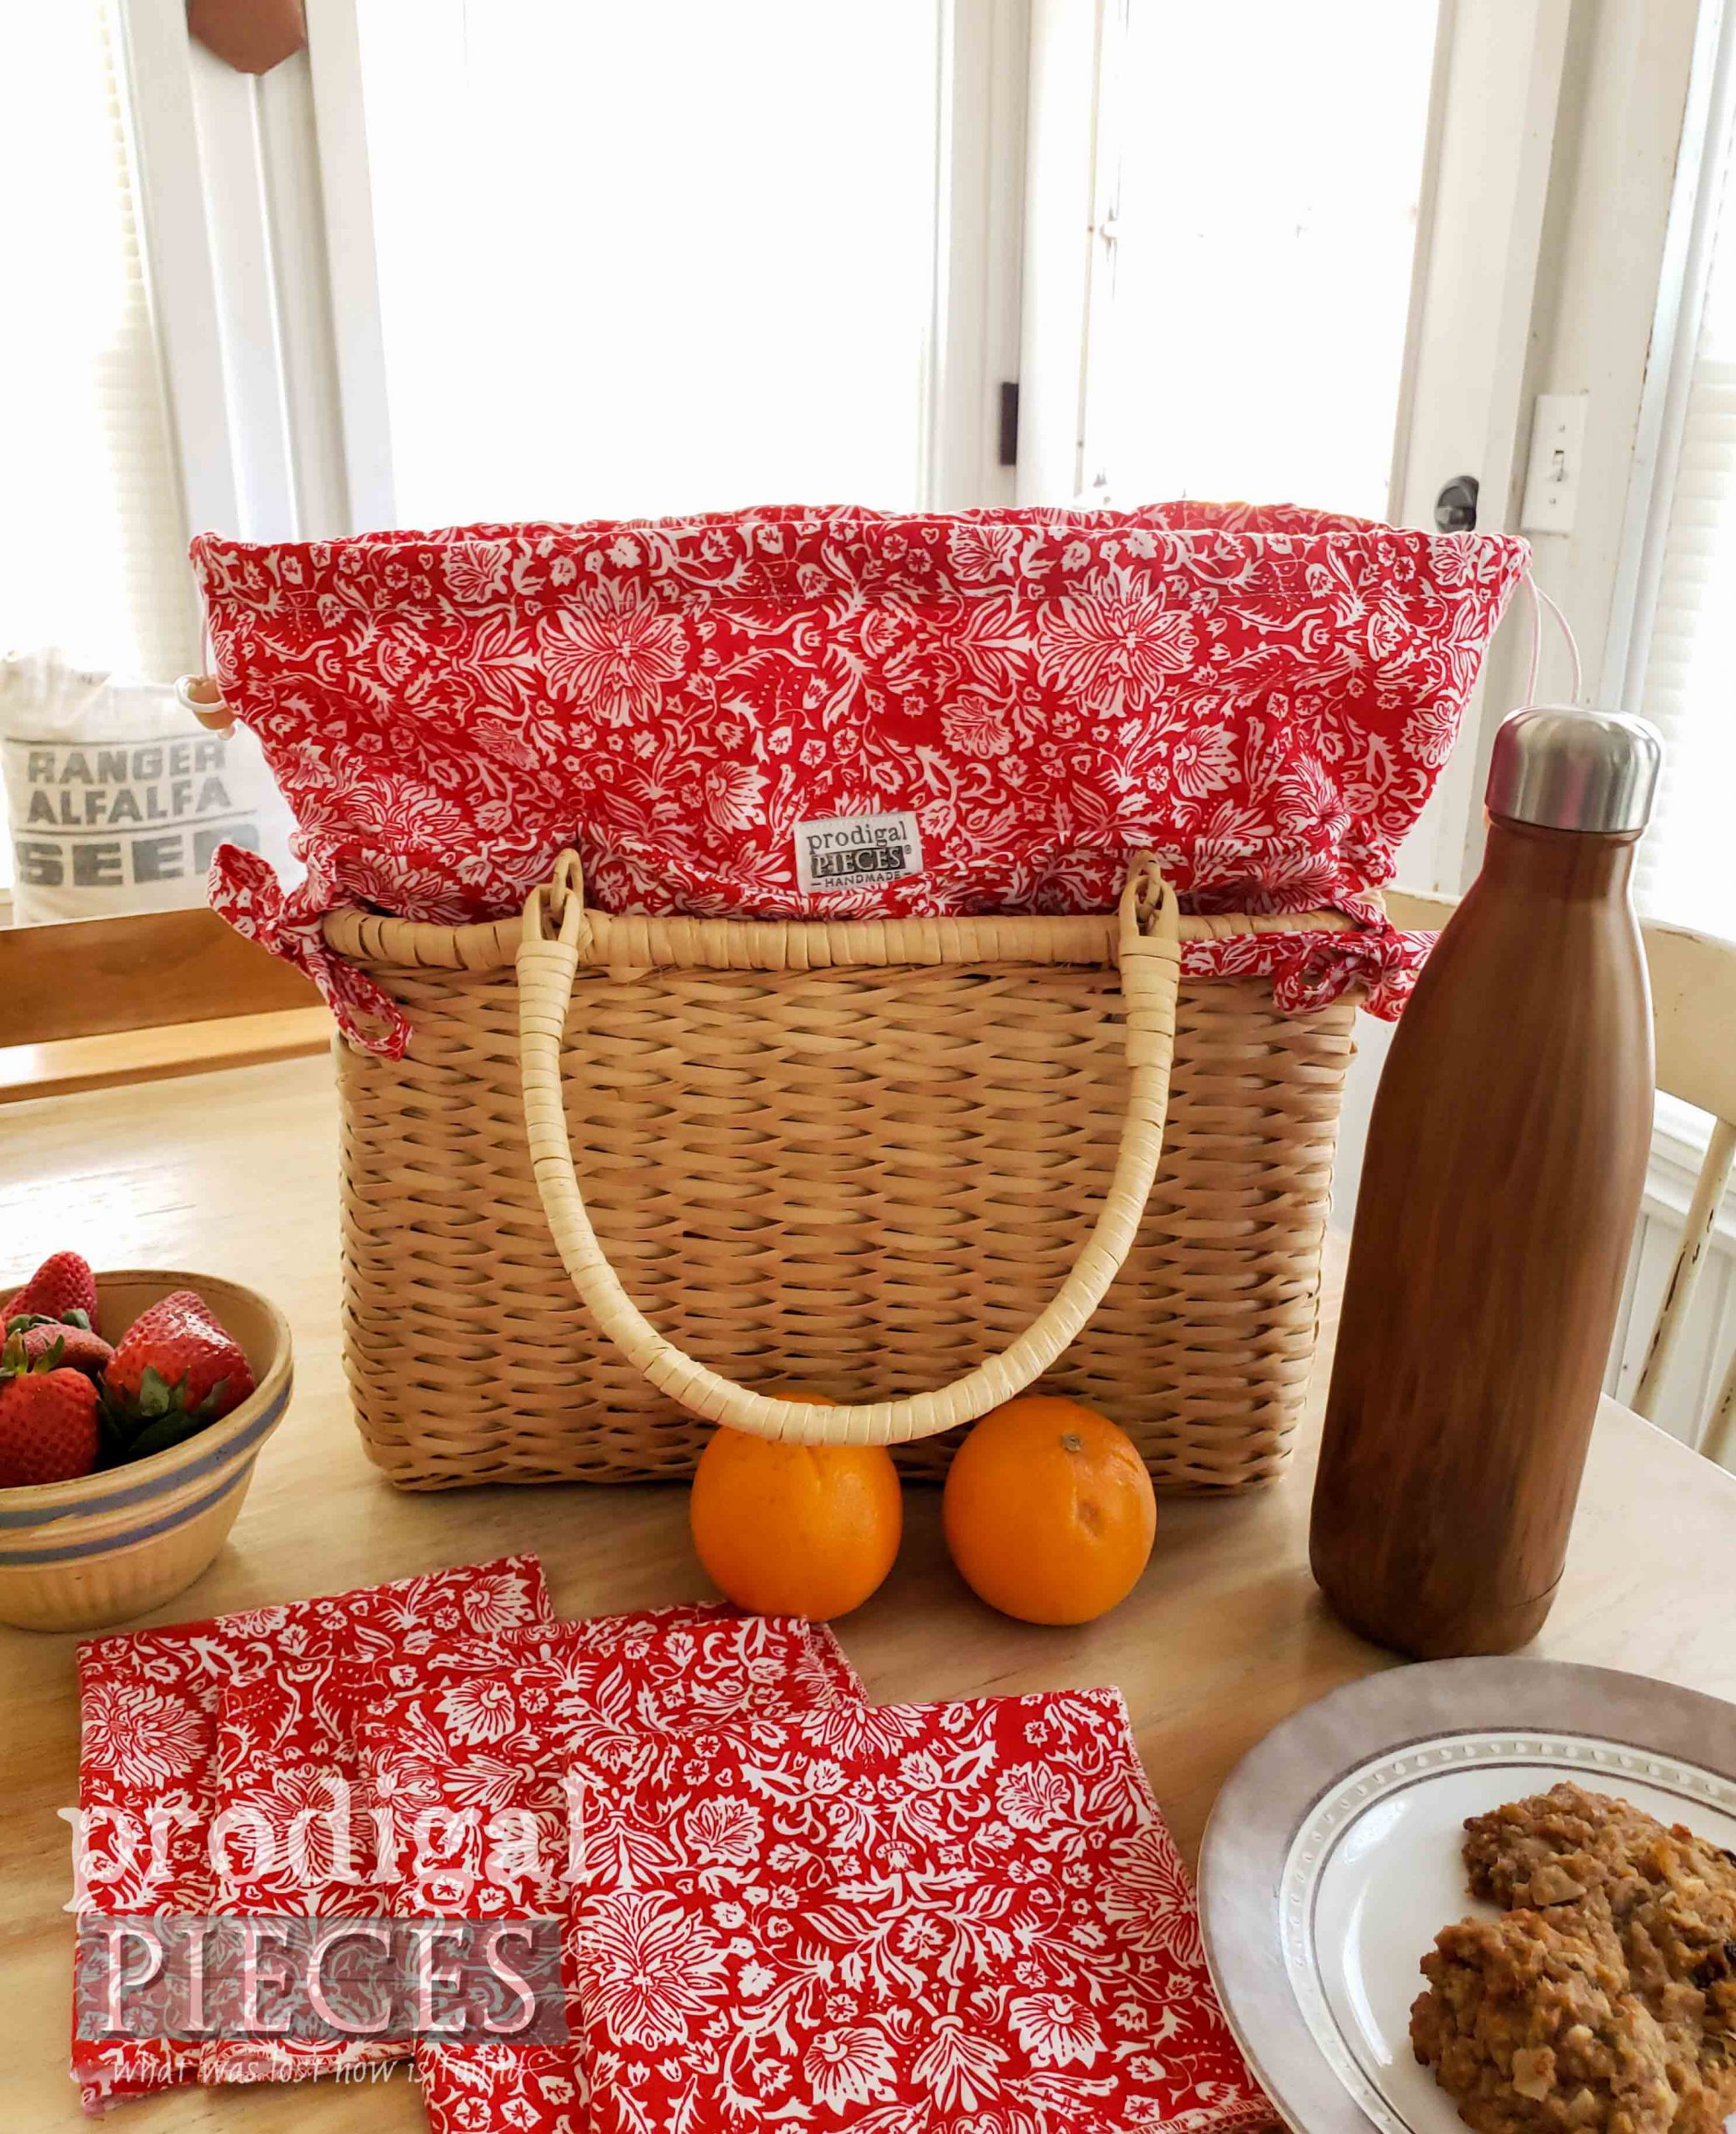 Farmhouse Picnic Basket with Set of Cloth Napkins by Larissa of Prodigal Pieces | prodigalpieces.com #prodigalpieces #sewing #home #summer #homedecor